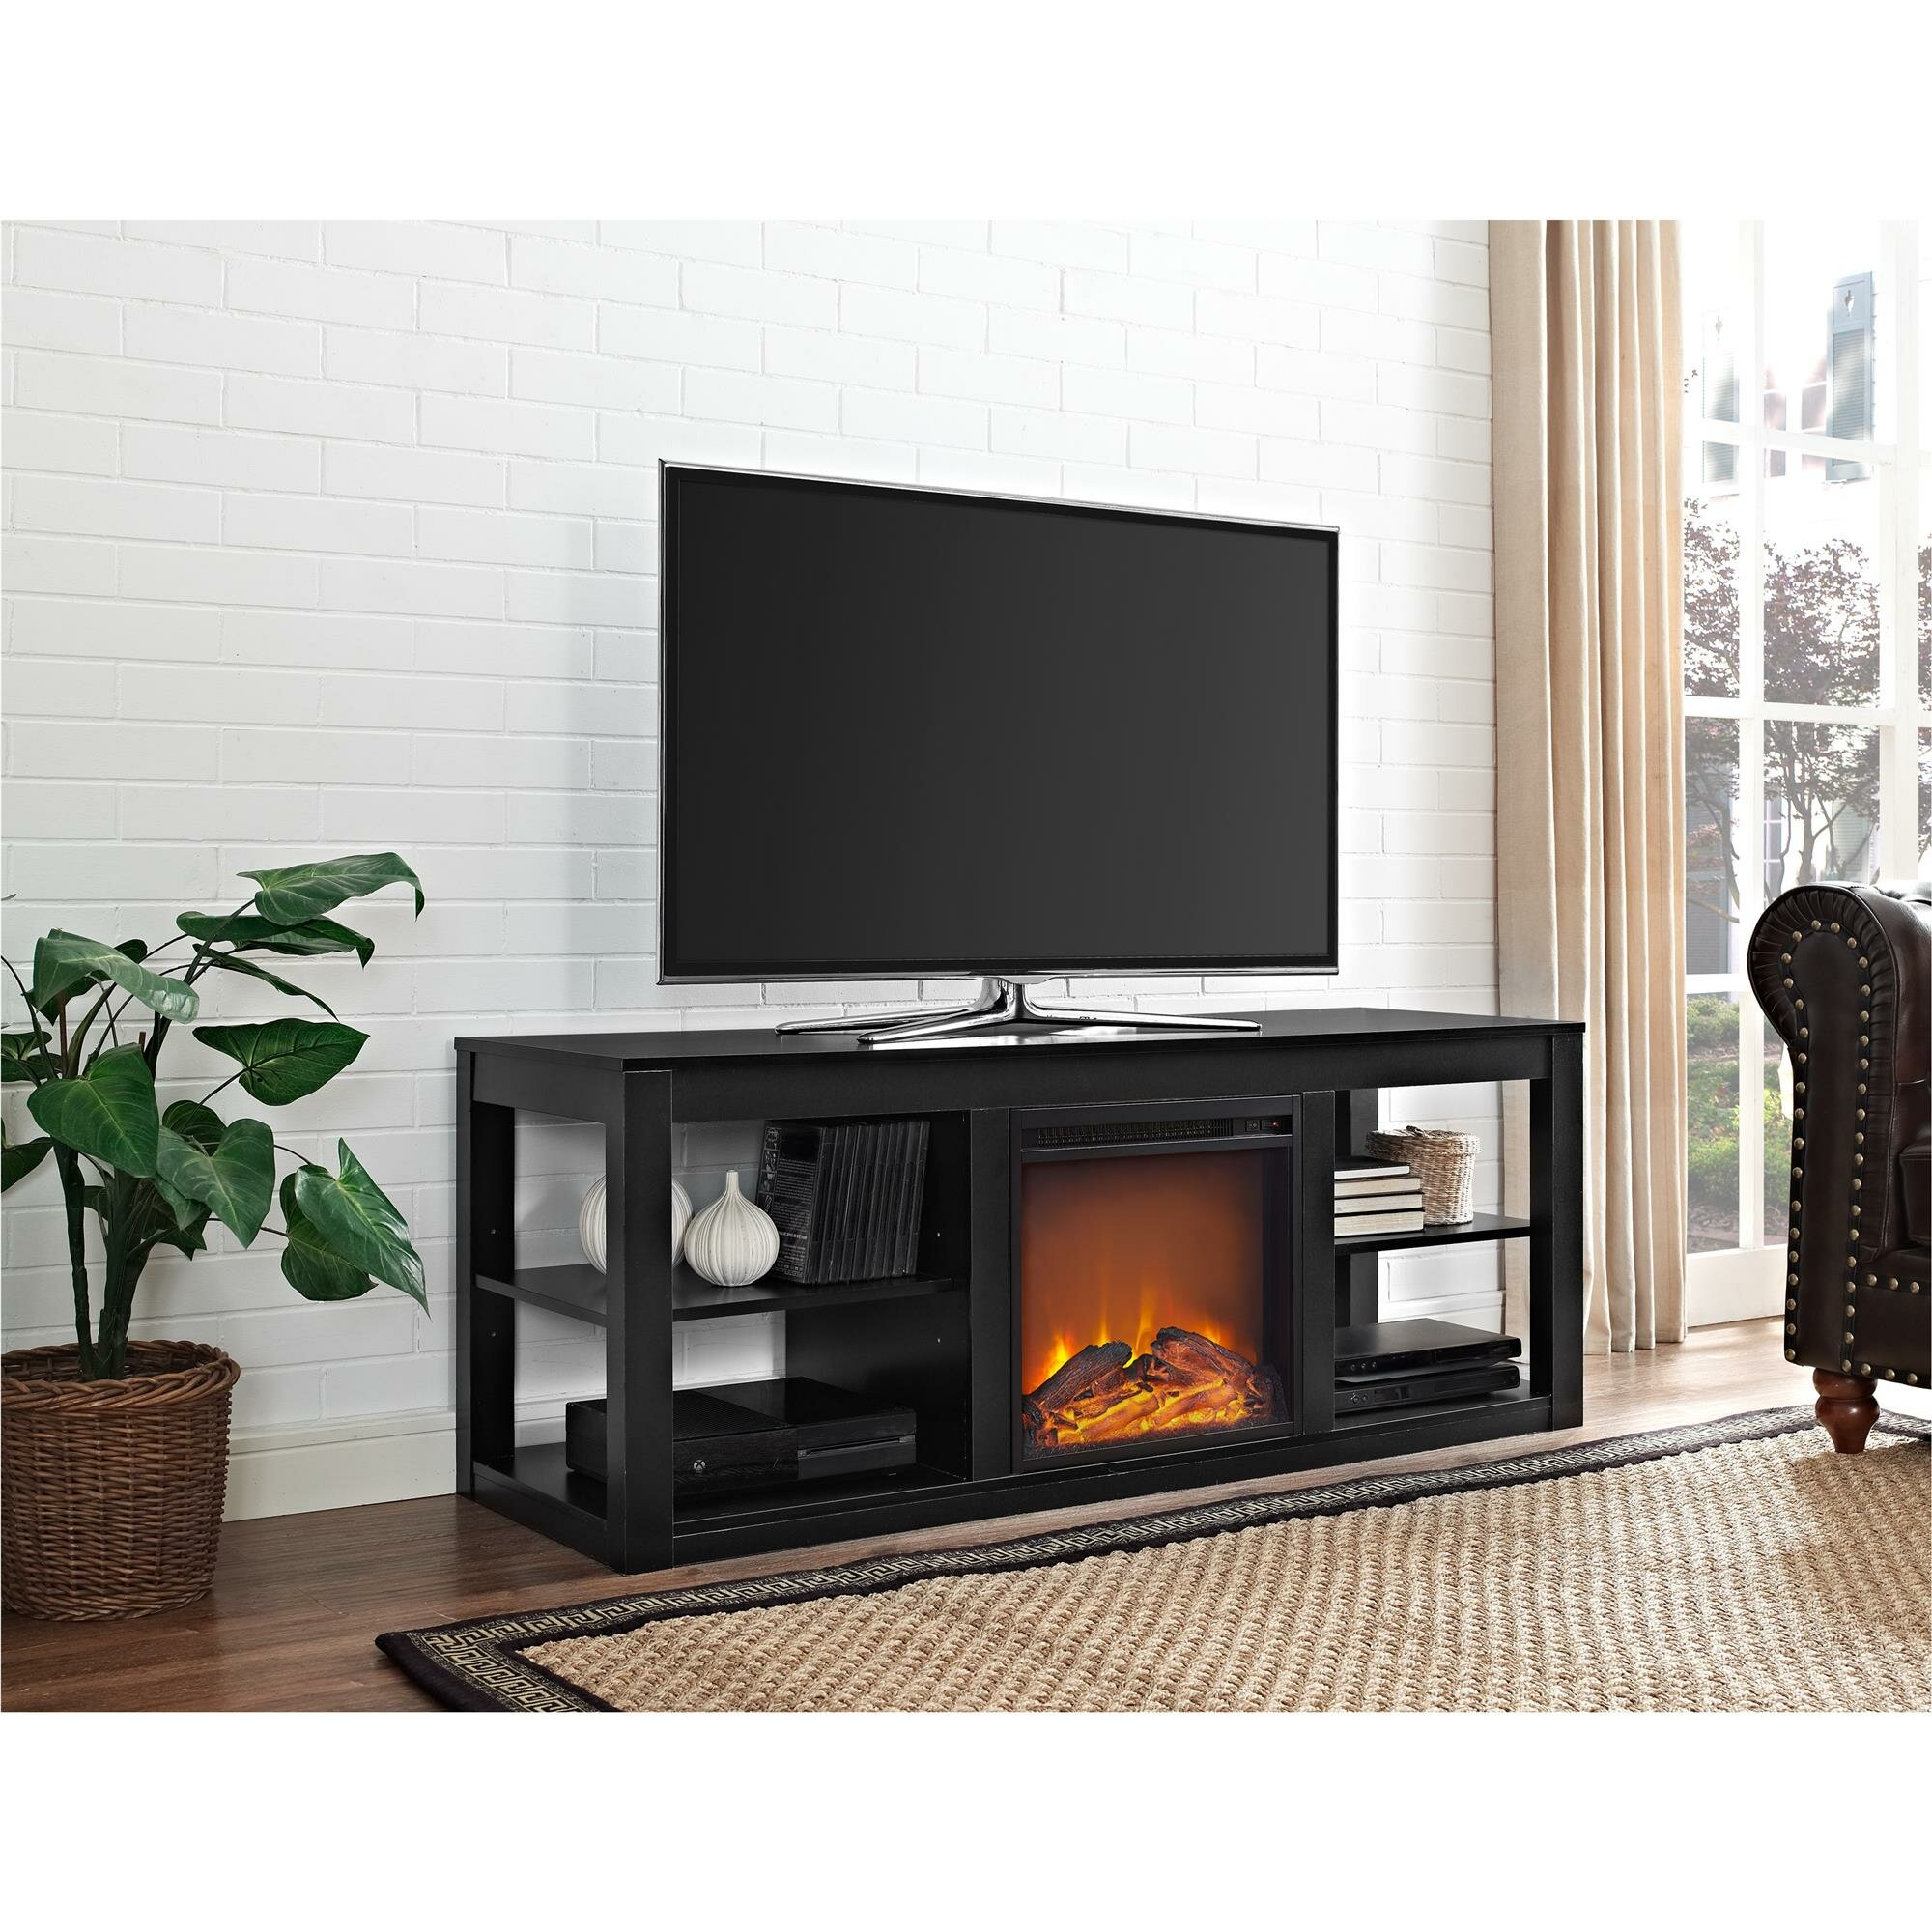 White tv stand with electric fireplace - Wade Logan Reg Salma Tv Stand With Electric Fireplace